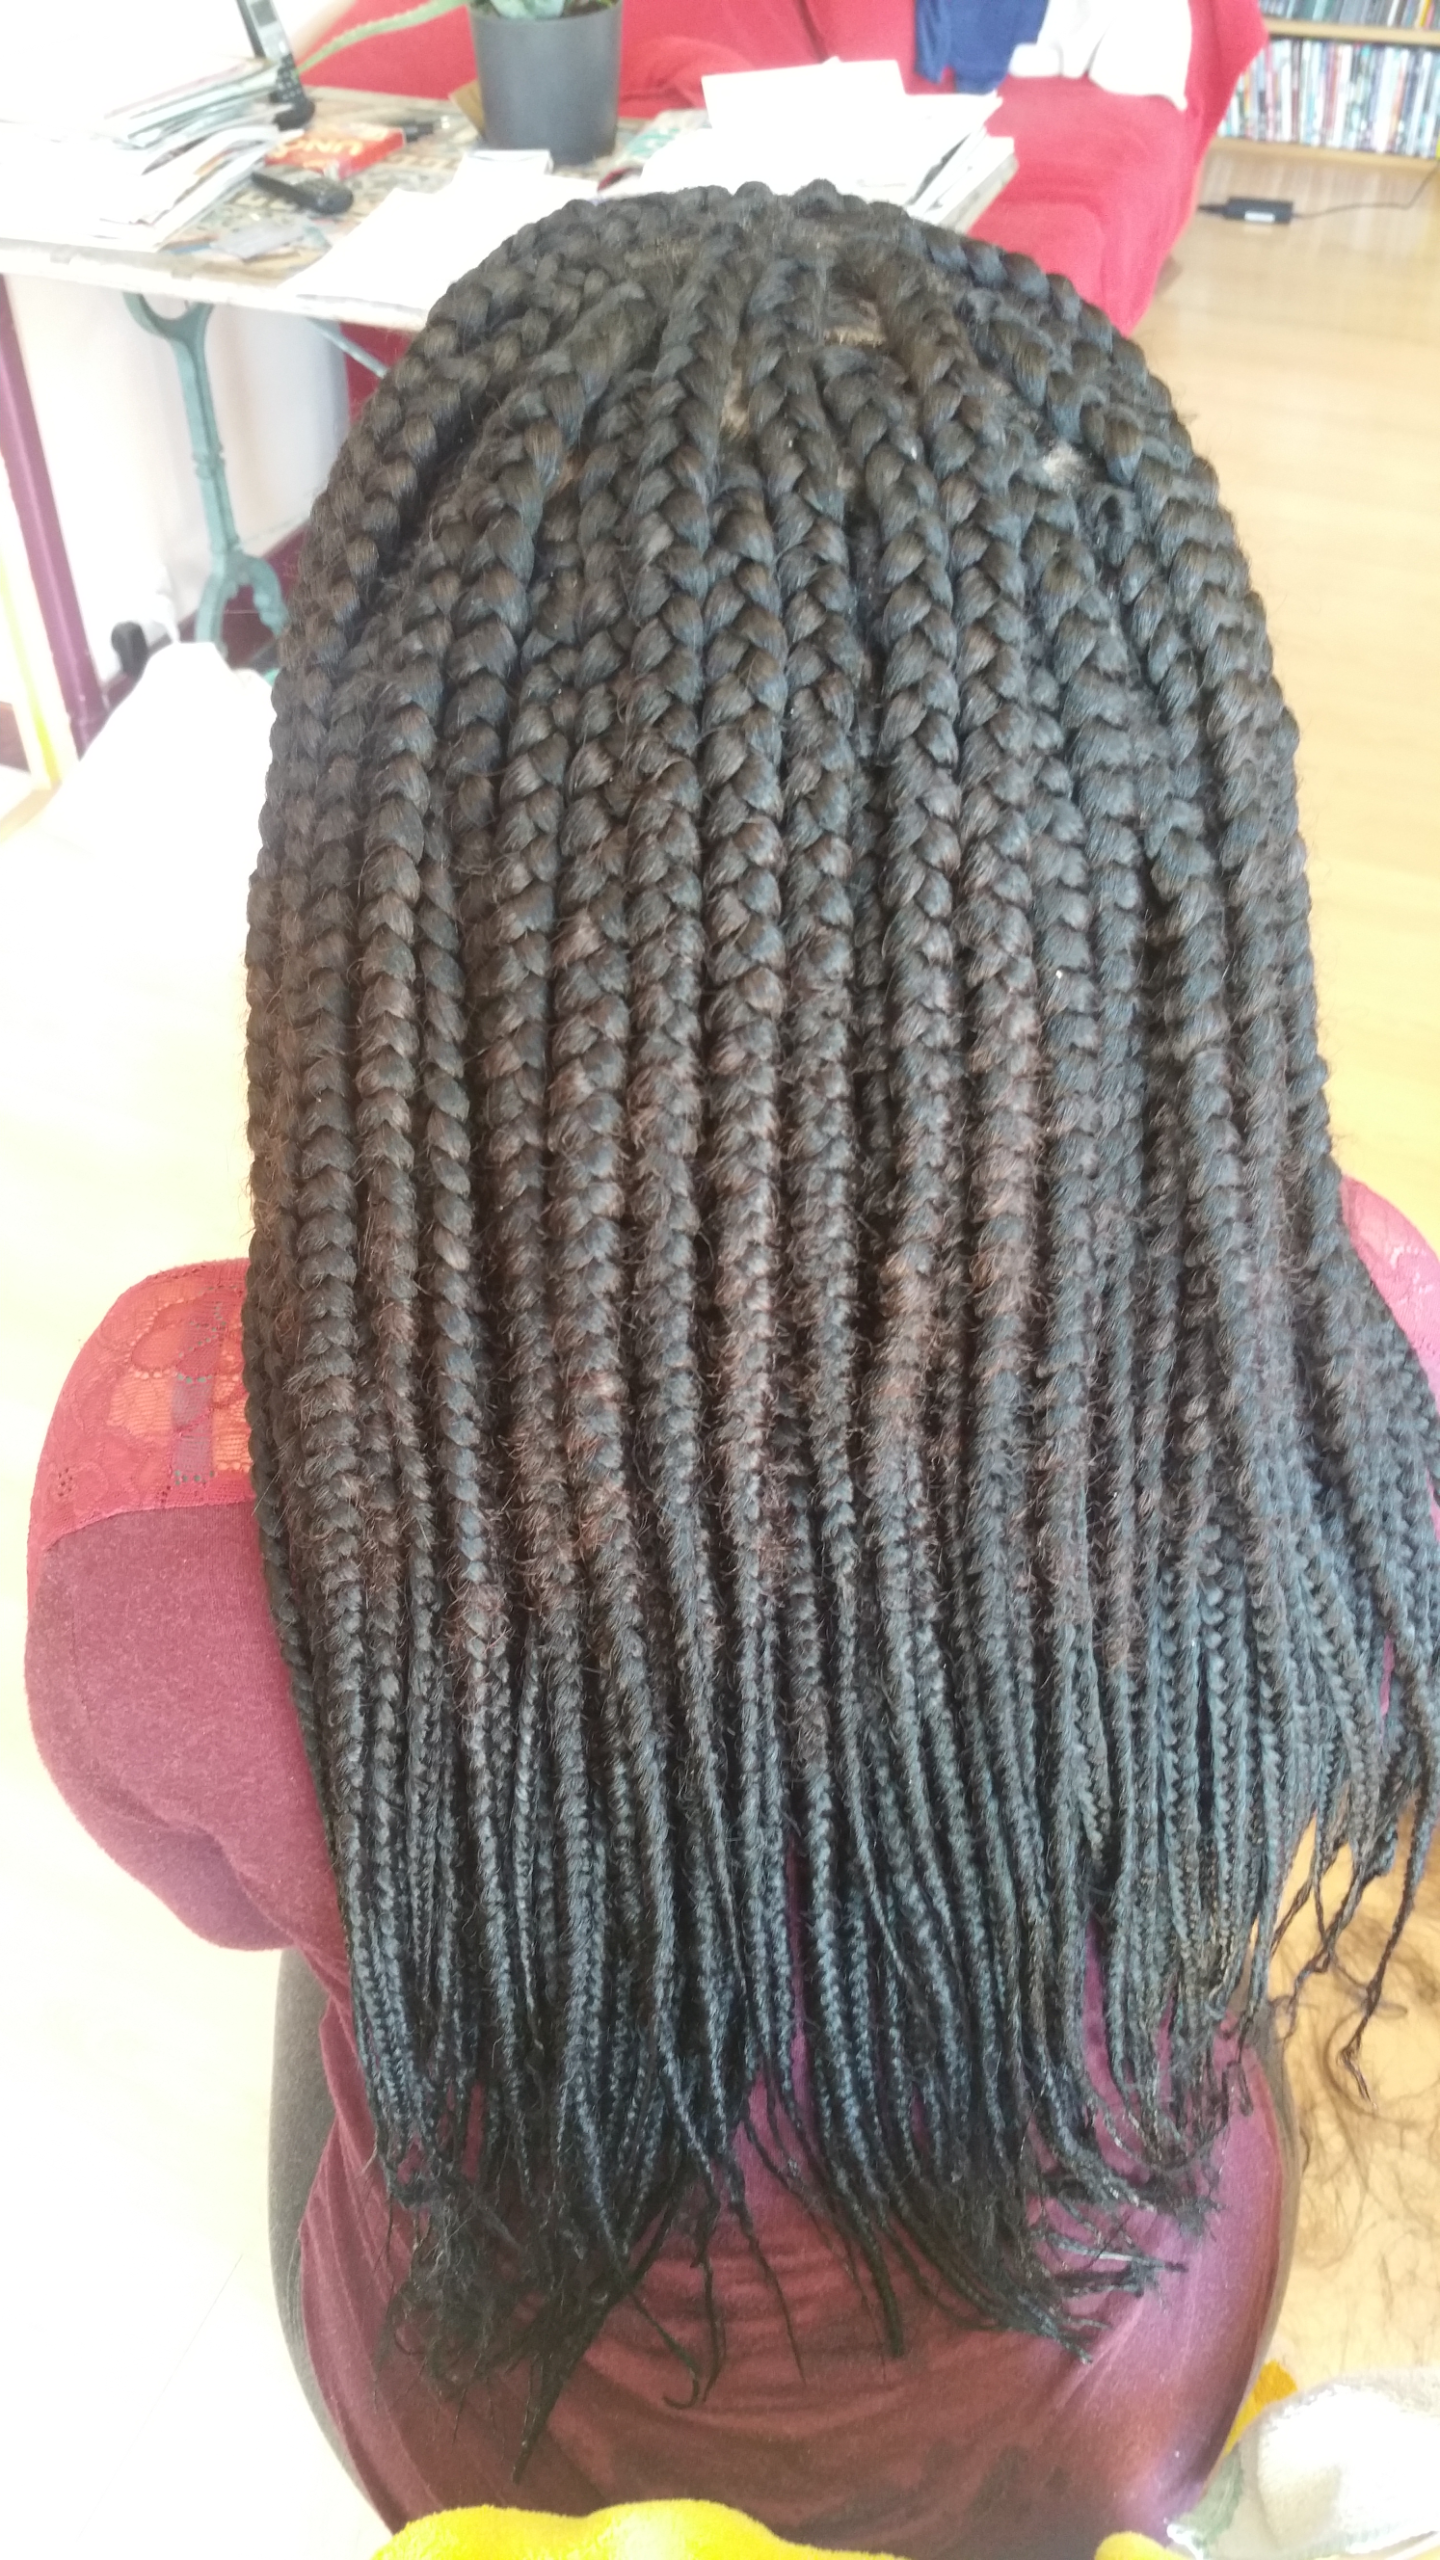 salon de coiffure afro tresse tresses box braids crochet braids vanilles tissages paris 75 77 78 91 92 93 94 95 WQIXMOVQ